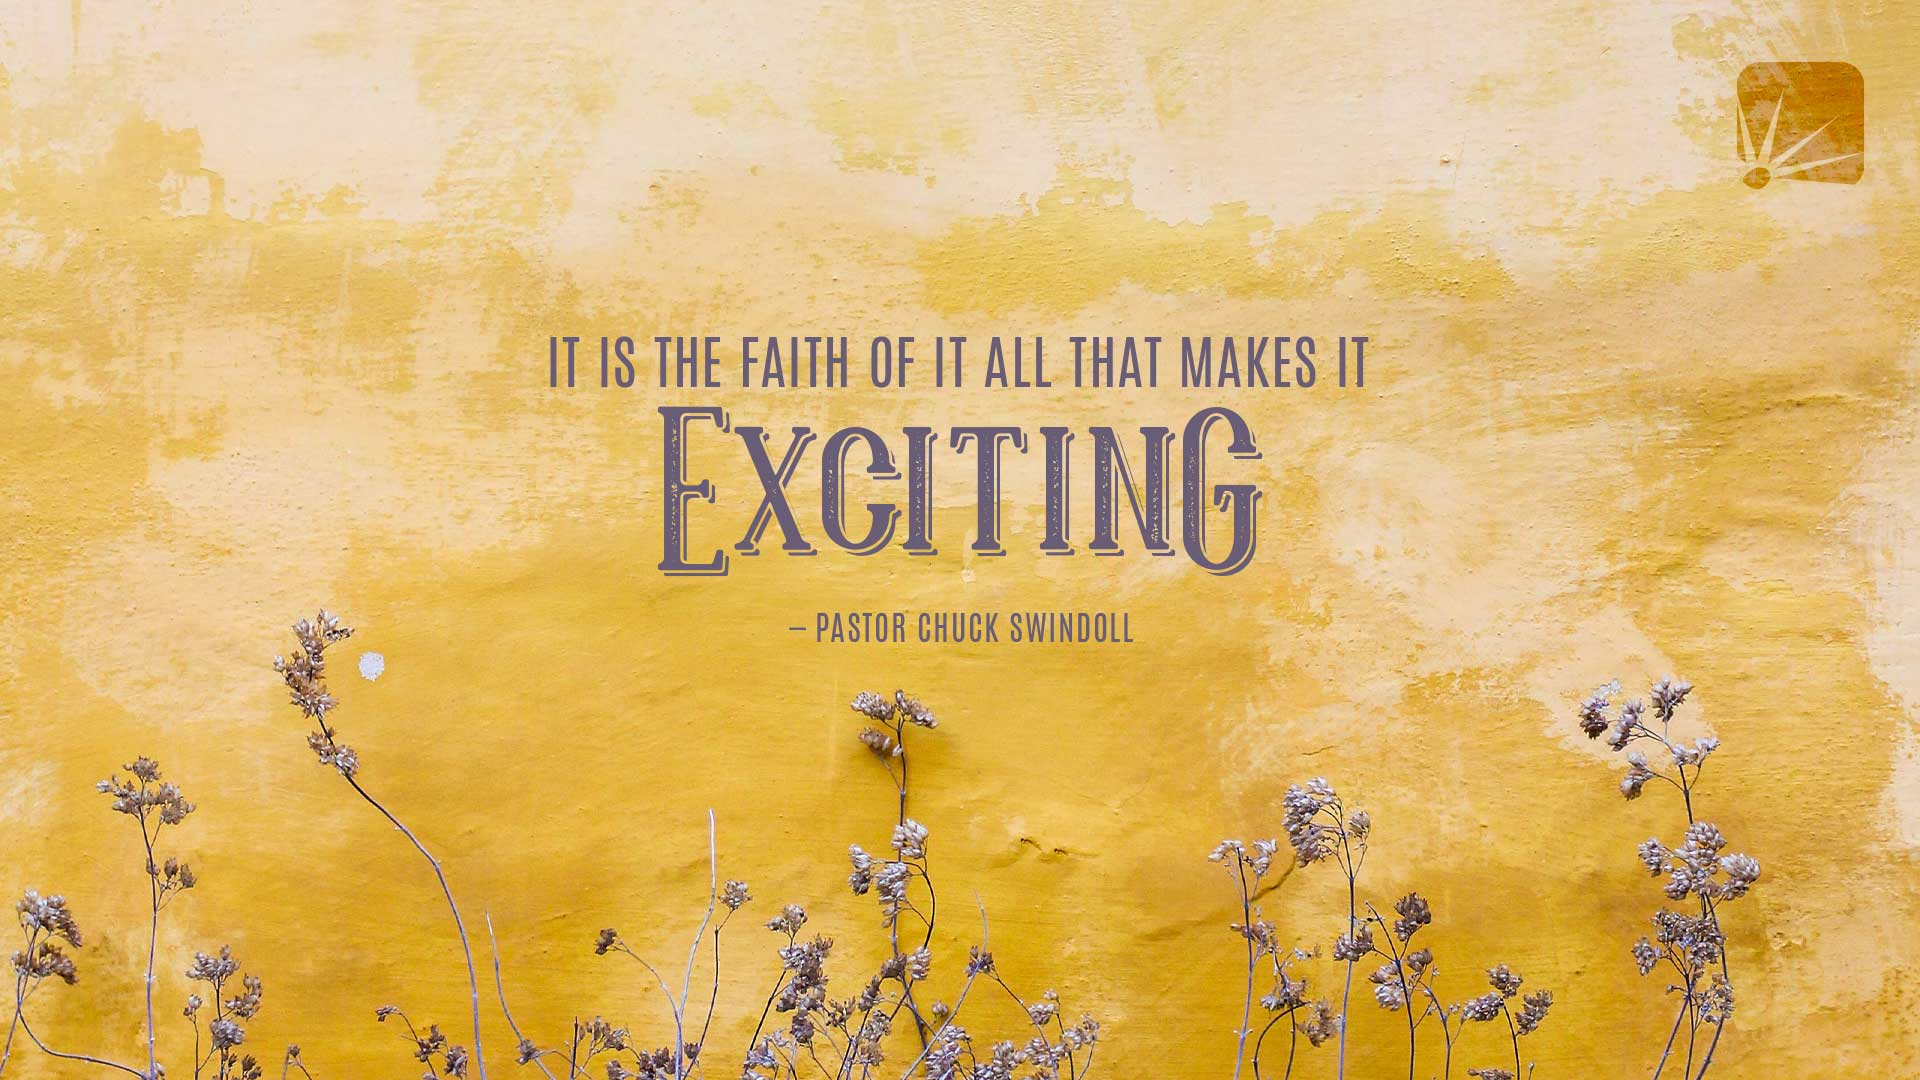 Quote: It is the faith of it all that makes it exciting.